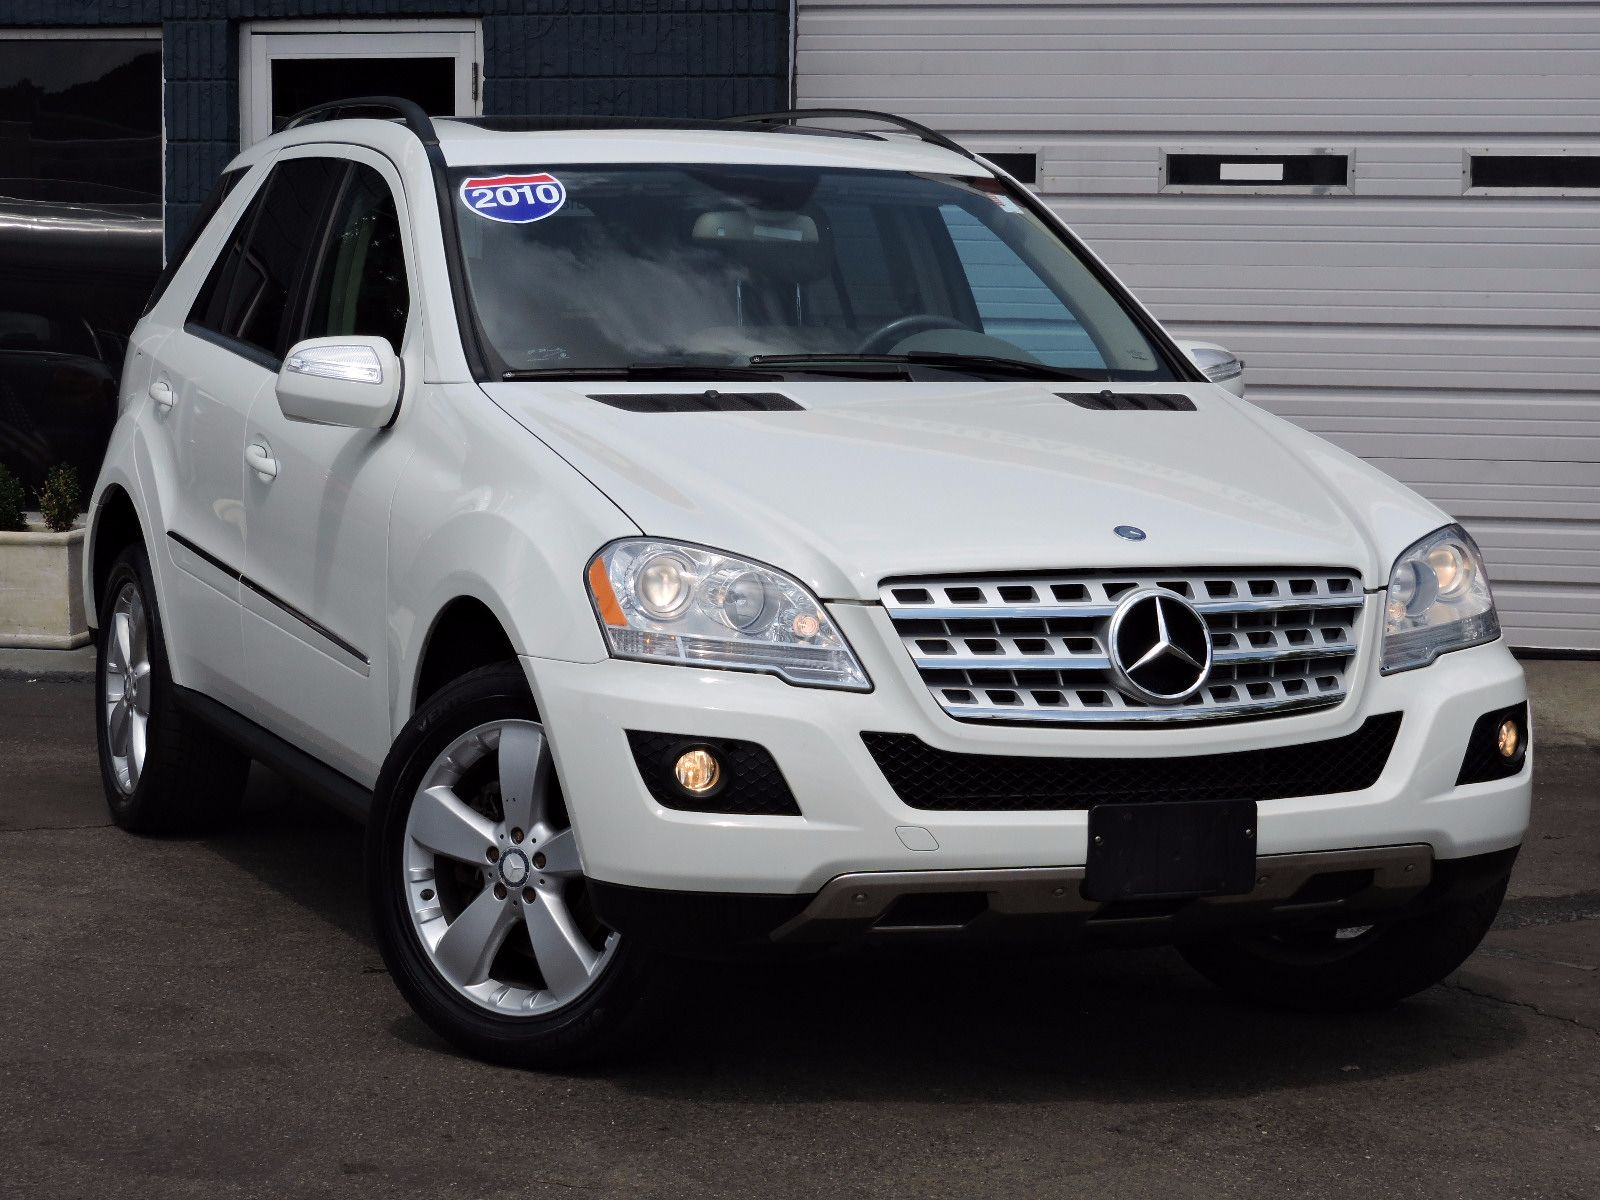 used 2010 mercedes benz ml 350 sl at auto house usa saugus. Black Bedroom Furniture Sets. Home Design Ideas